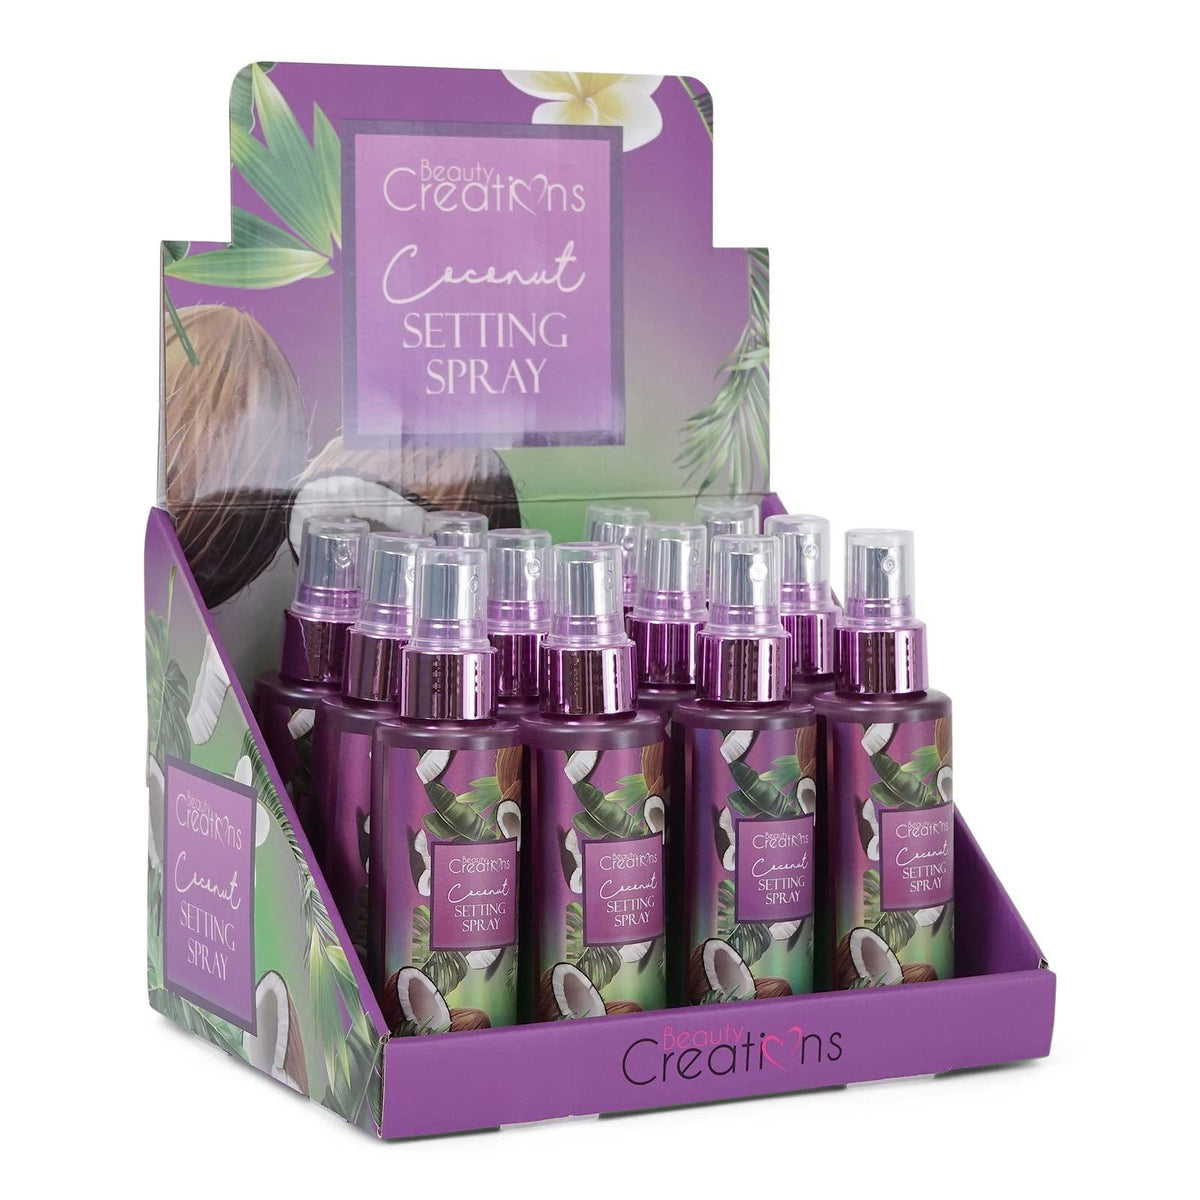 BEAUTY CREATIONS | Coconut Setting Spray (Case of 12)